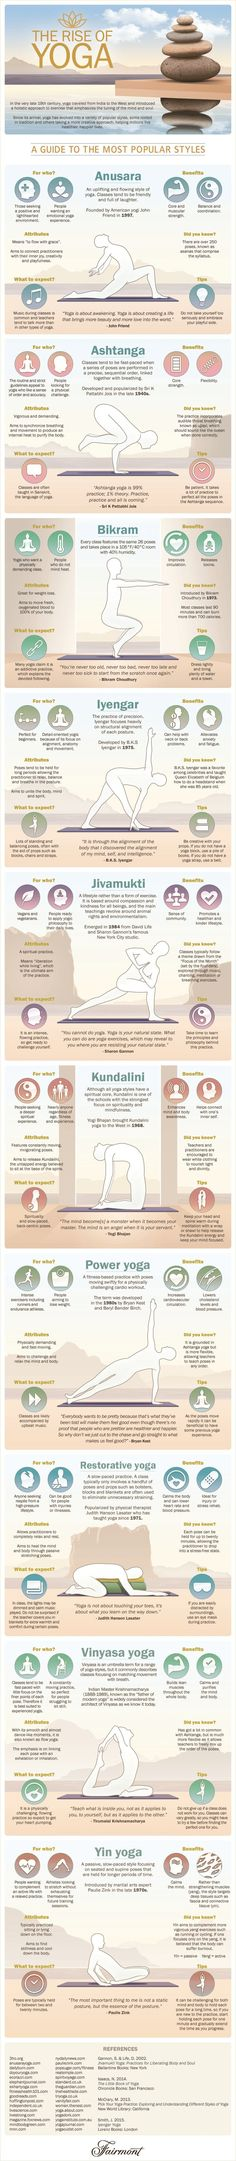 Your Cheat Sheet to the Most Popular Styles of Yoga